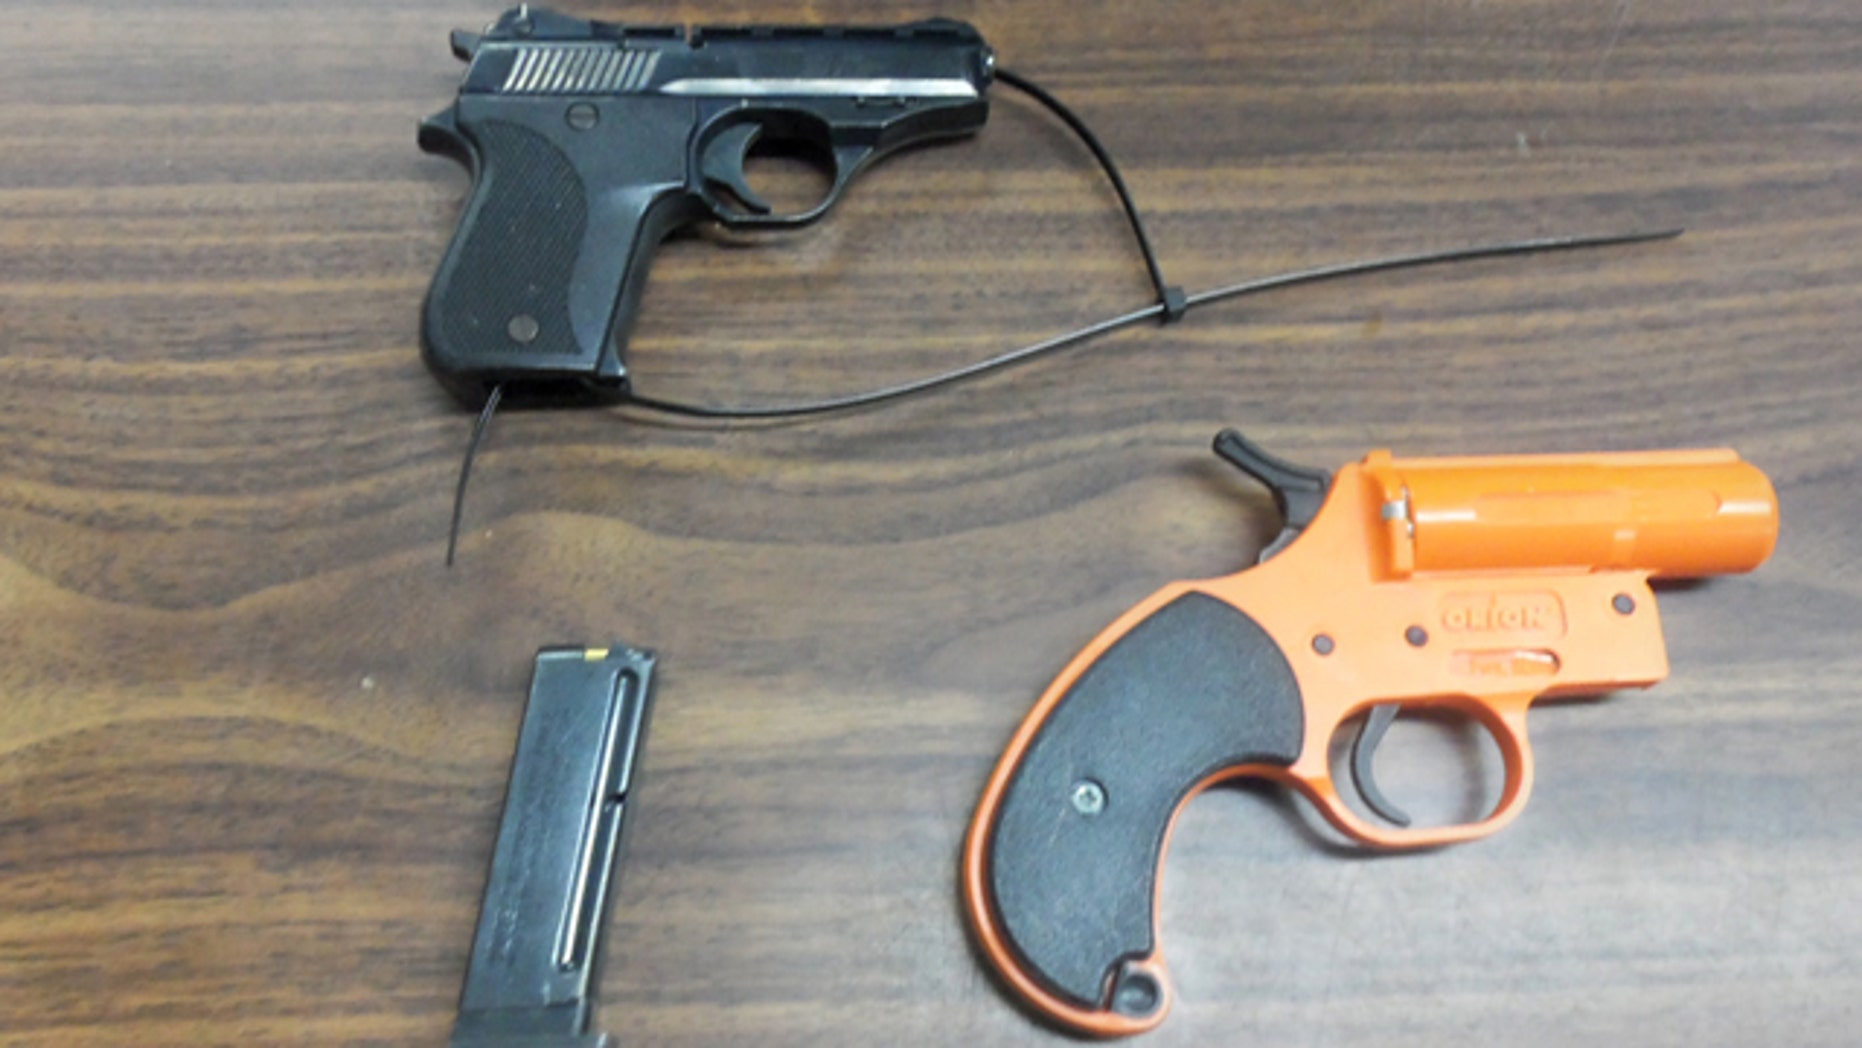 Jan. 17, 2013: This photo provided by the New York City Police Department shows a .22 caliber semi-automatic handgun, top, and a flare gun.